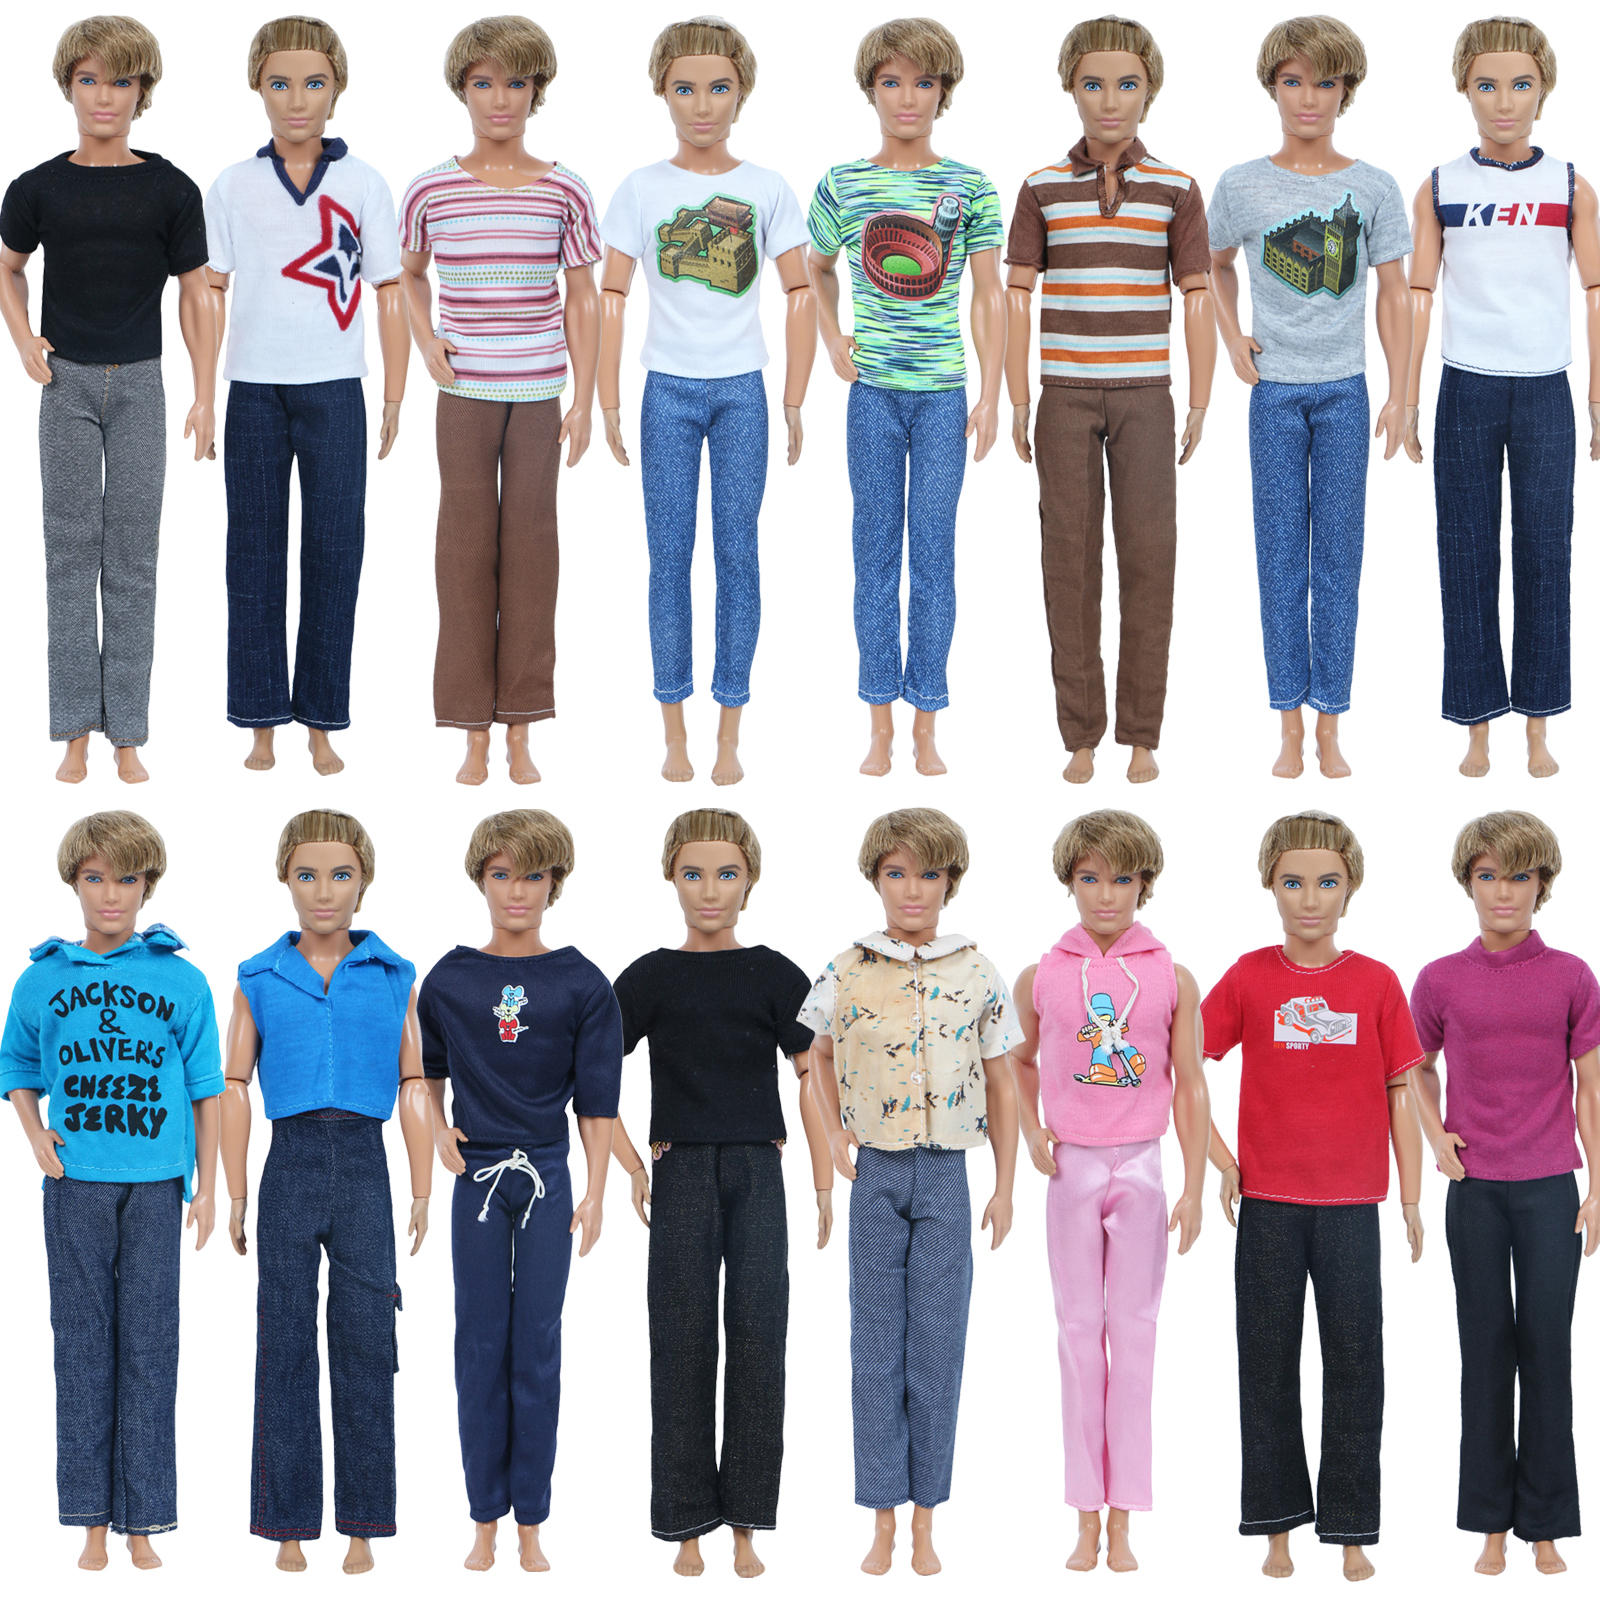 LOT 5 Sets Casual Wear Clothes Tops Shirt Pants Outfits for 12/'/' Boy Friend Doll